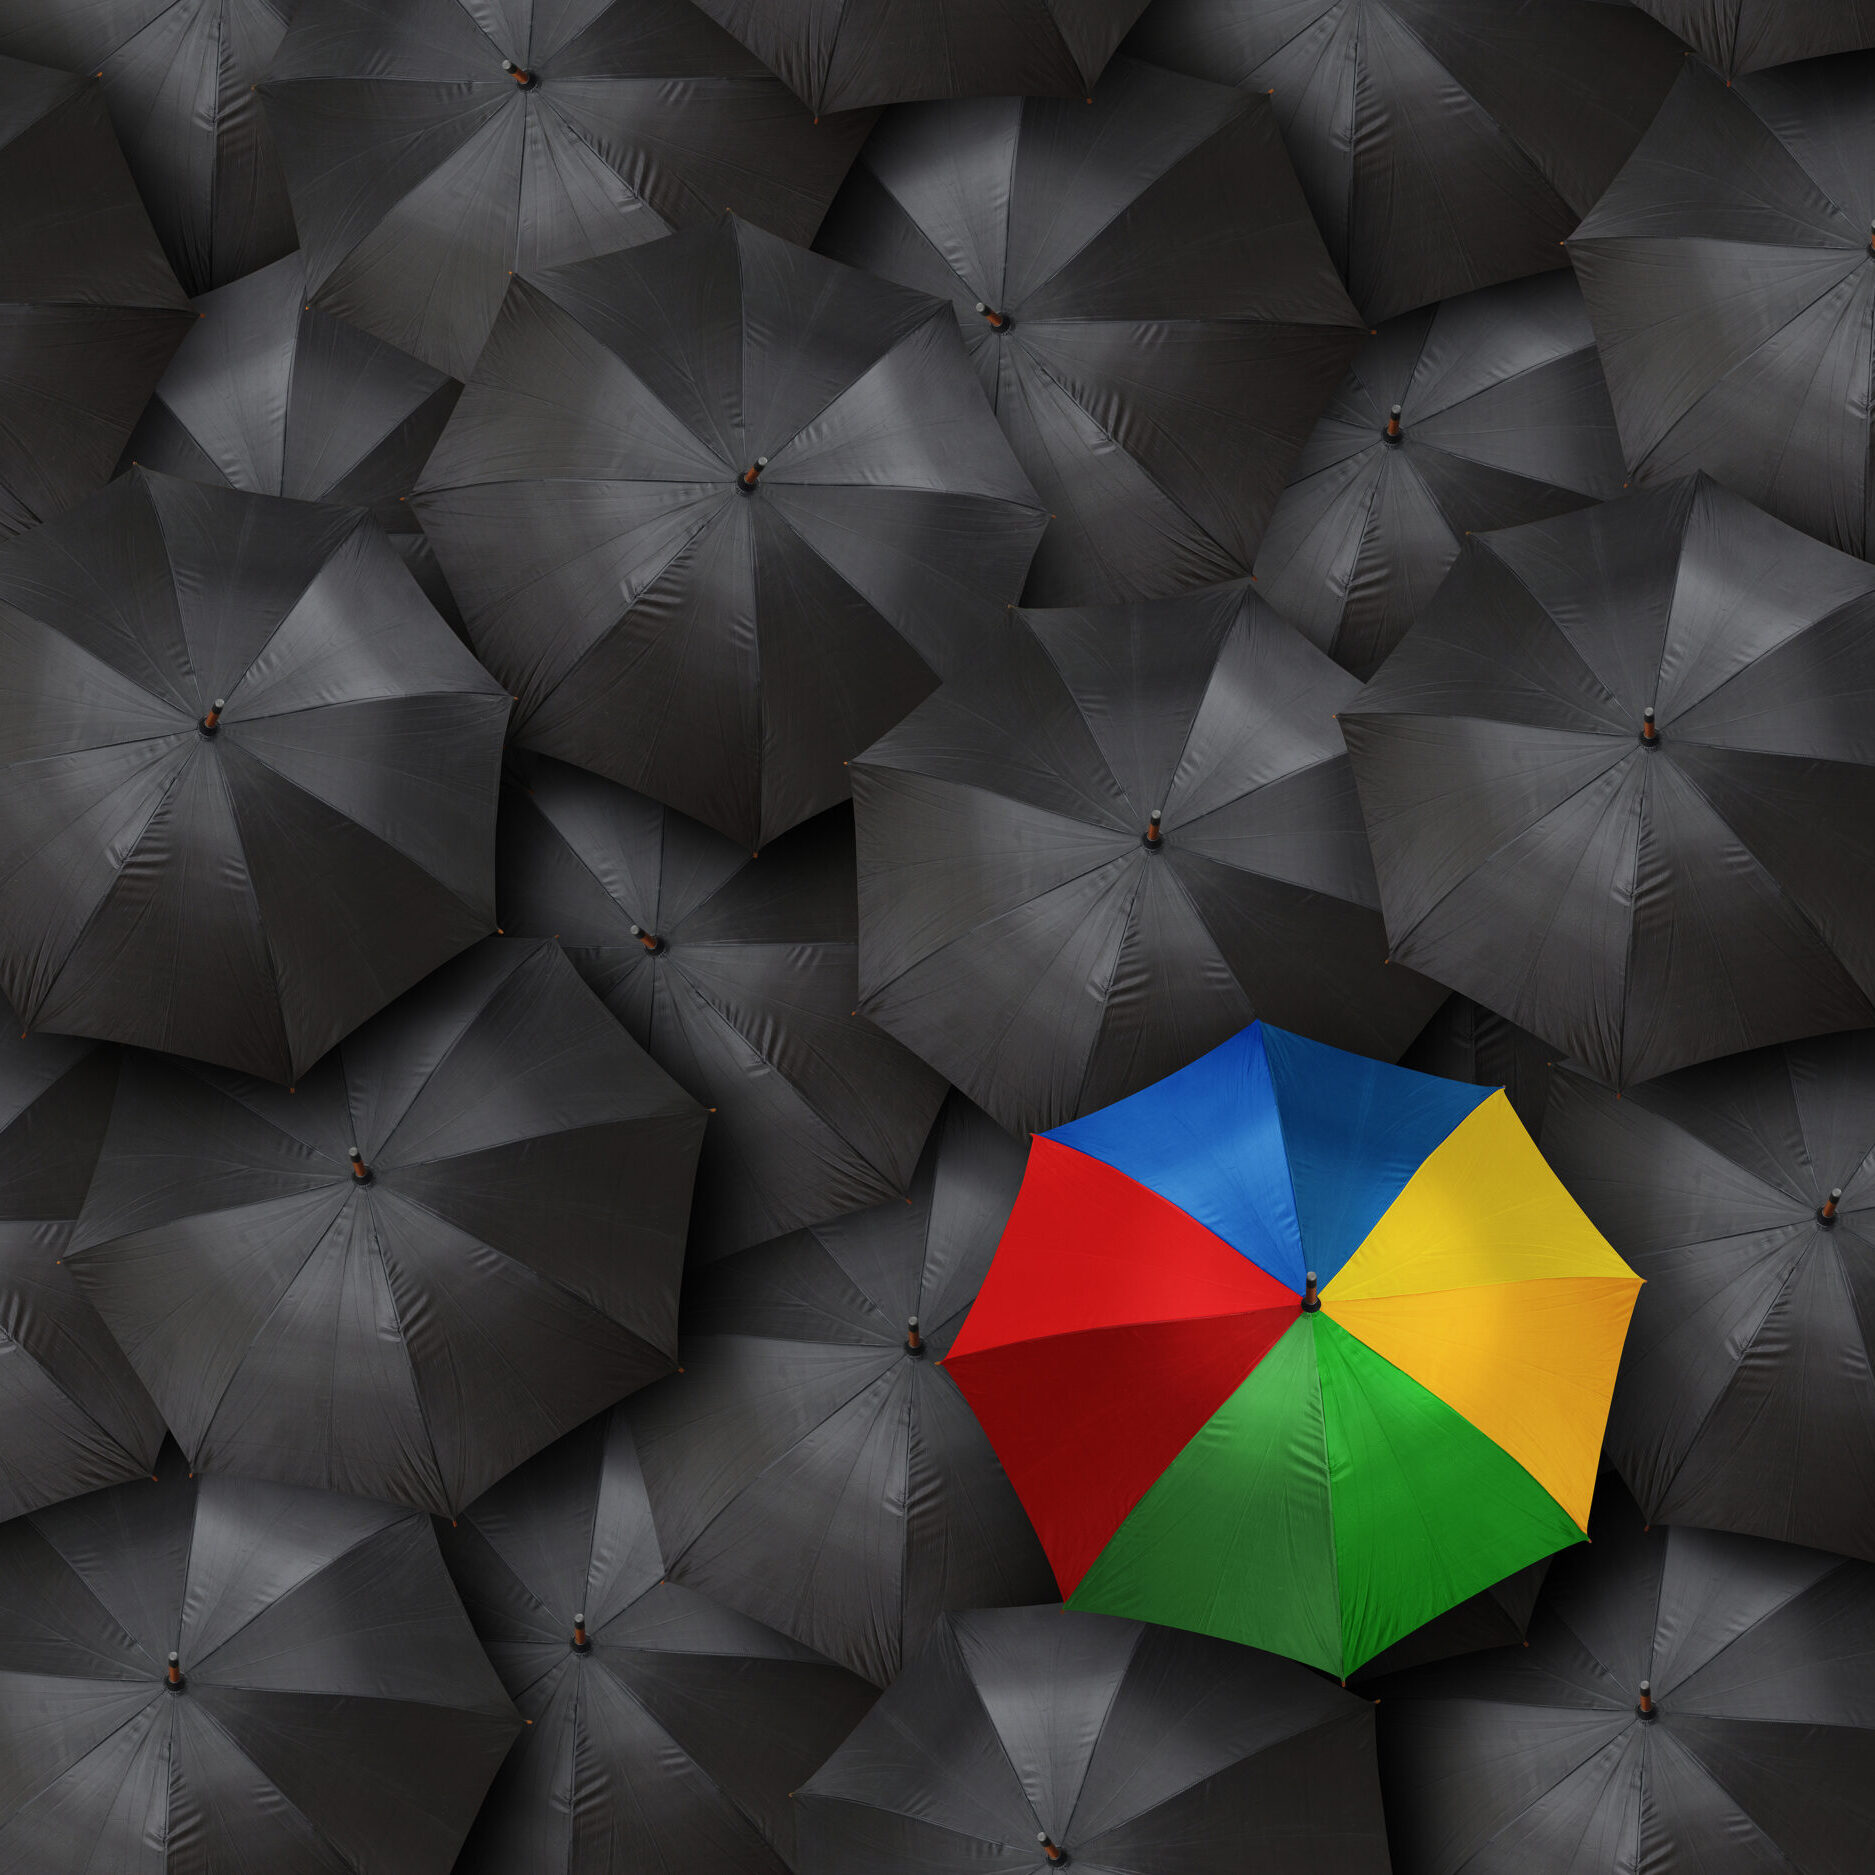 concept for leadership with many umbrellas and one colorful